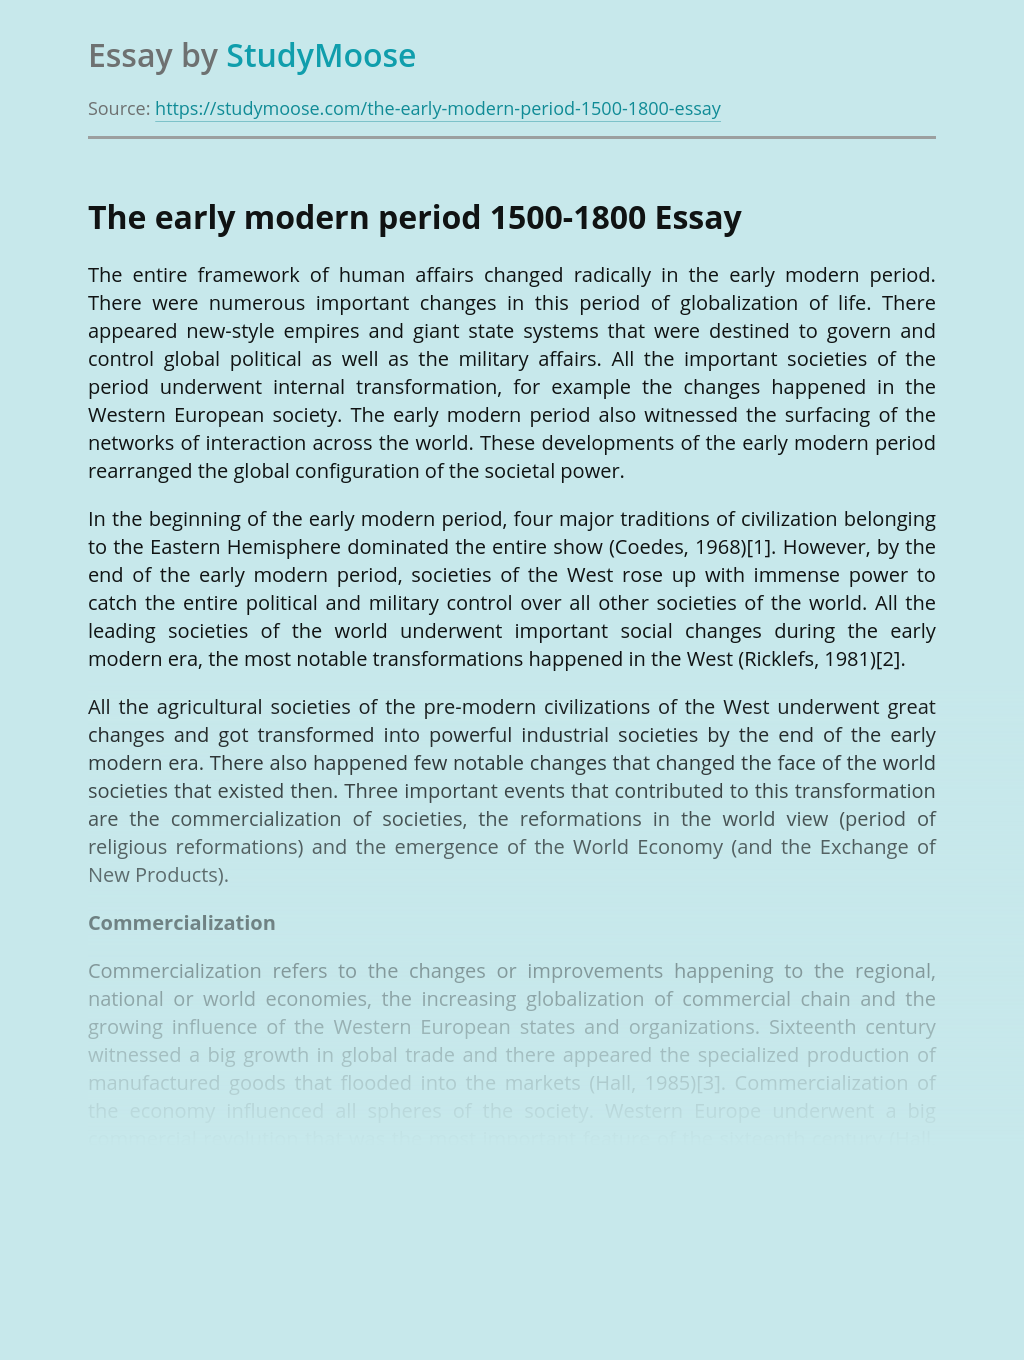 The early modern period 1500-1800